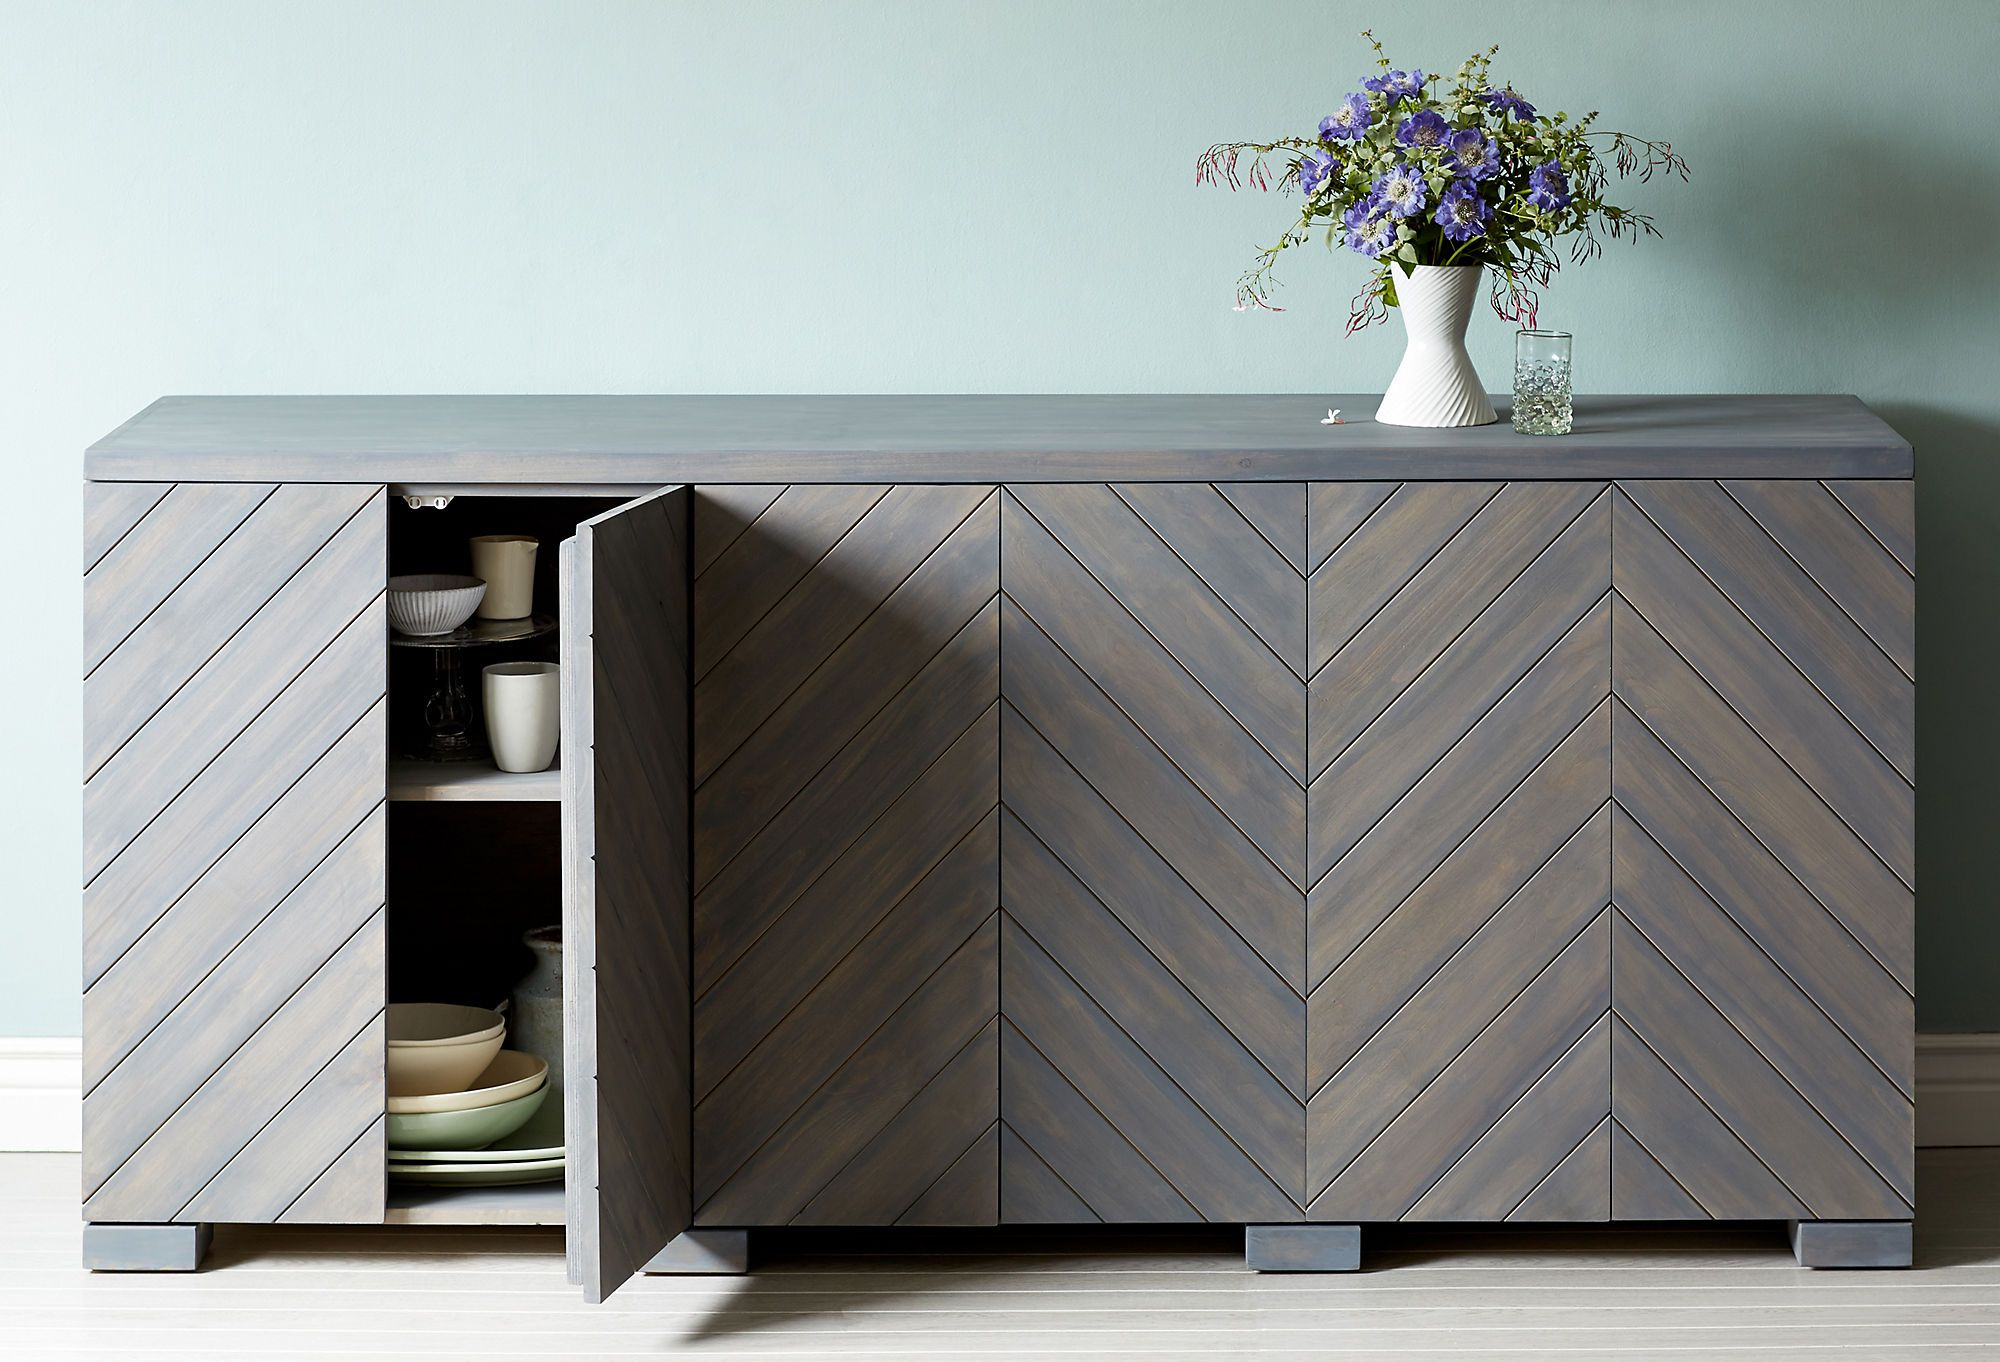 Kitchen Cabinet Design Chevron Wood With Soft Grey Wash Of Stain Pair With Carrera Marble Or